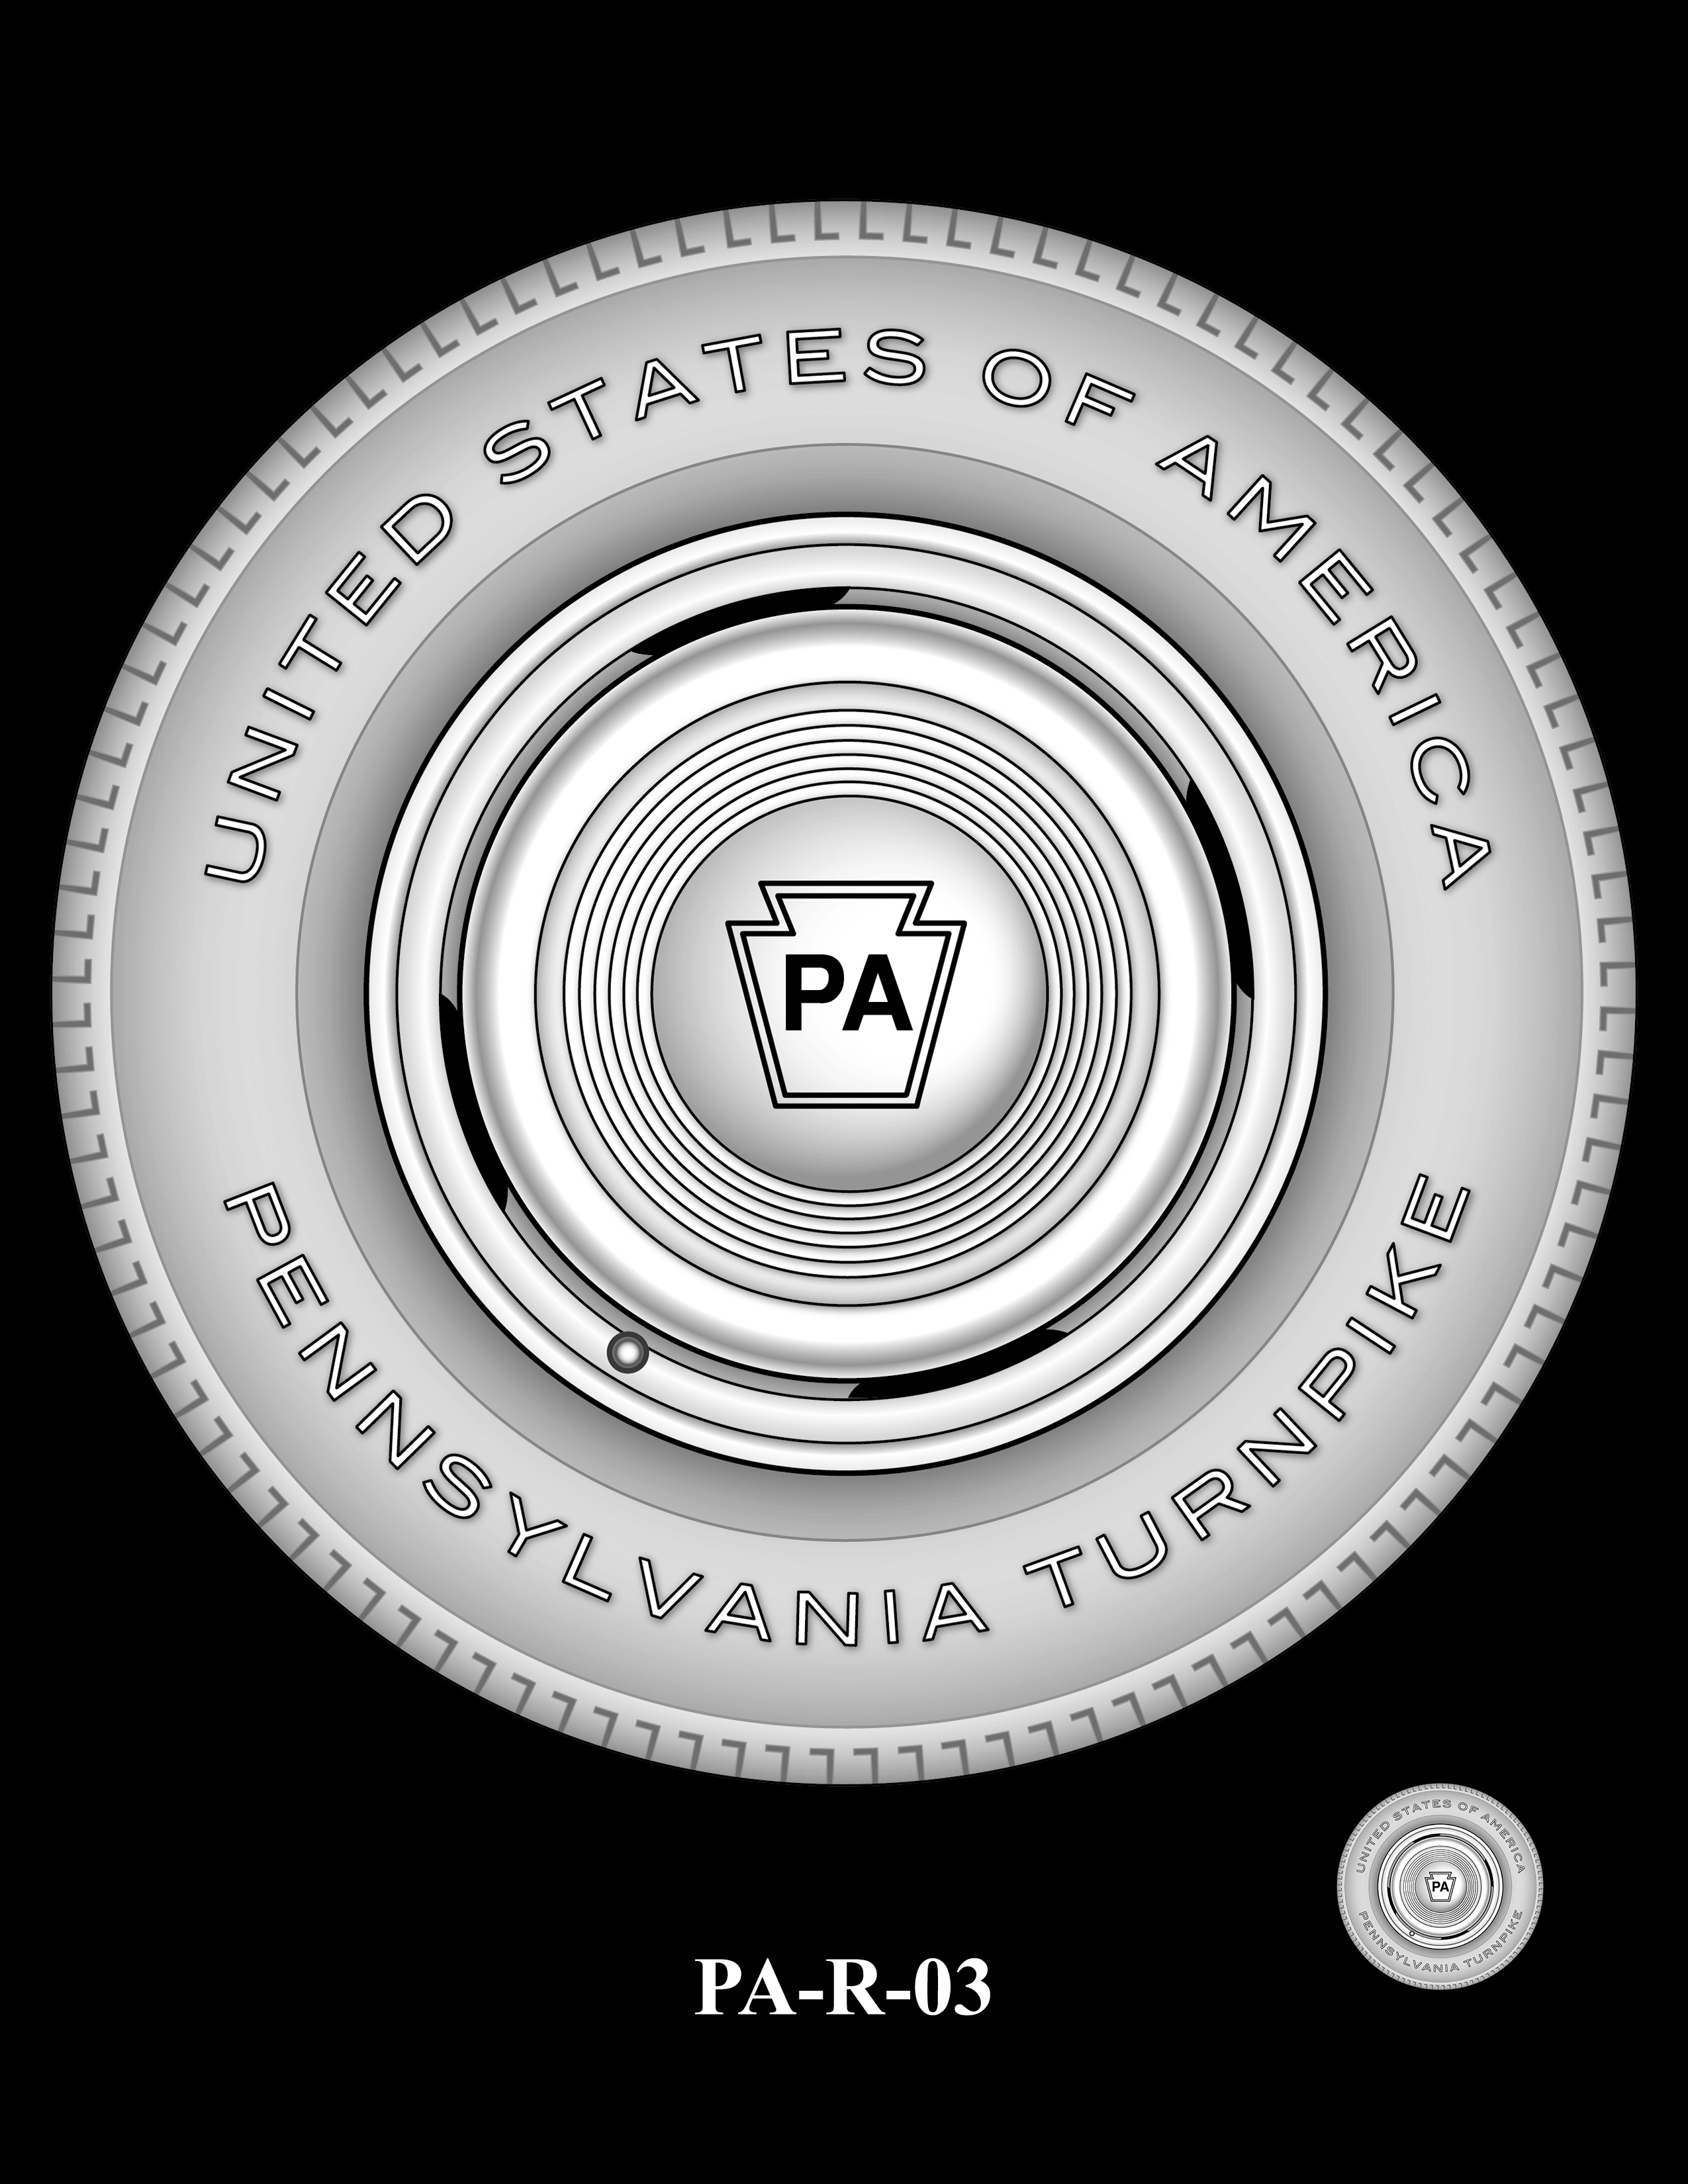 PA-R-03 -- 2019 American Innovation $1 Coin Program